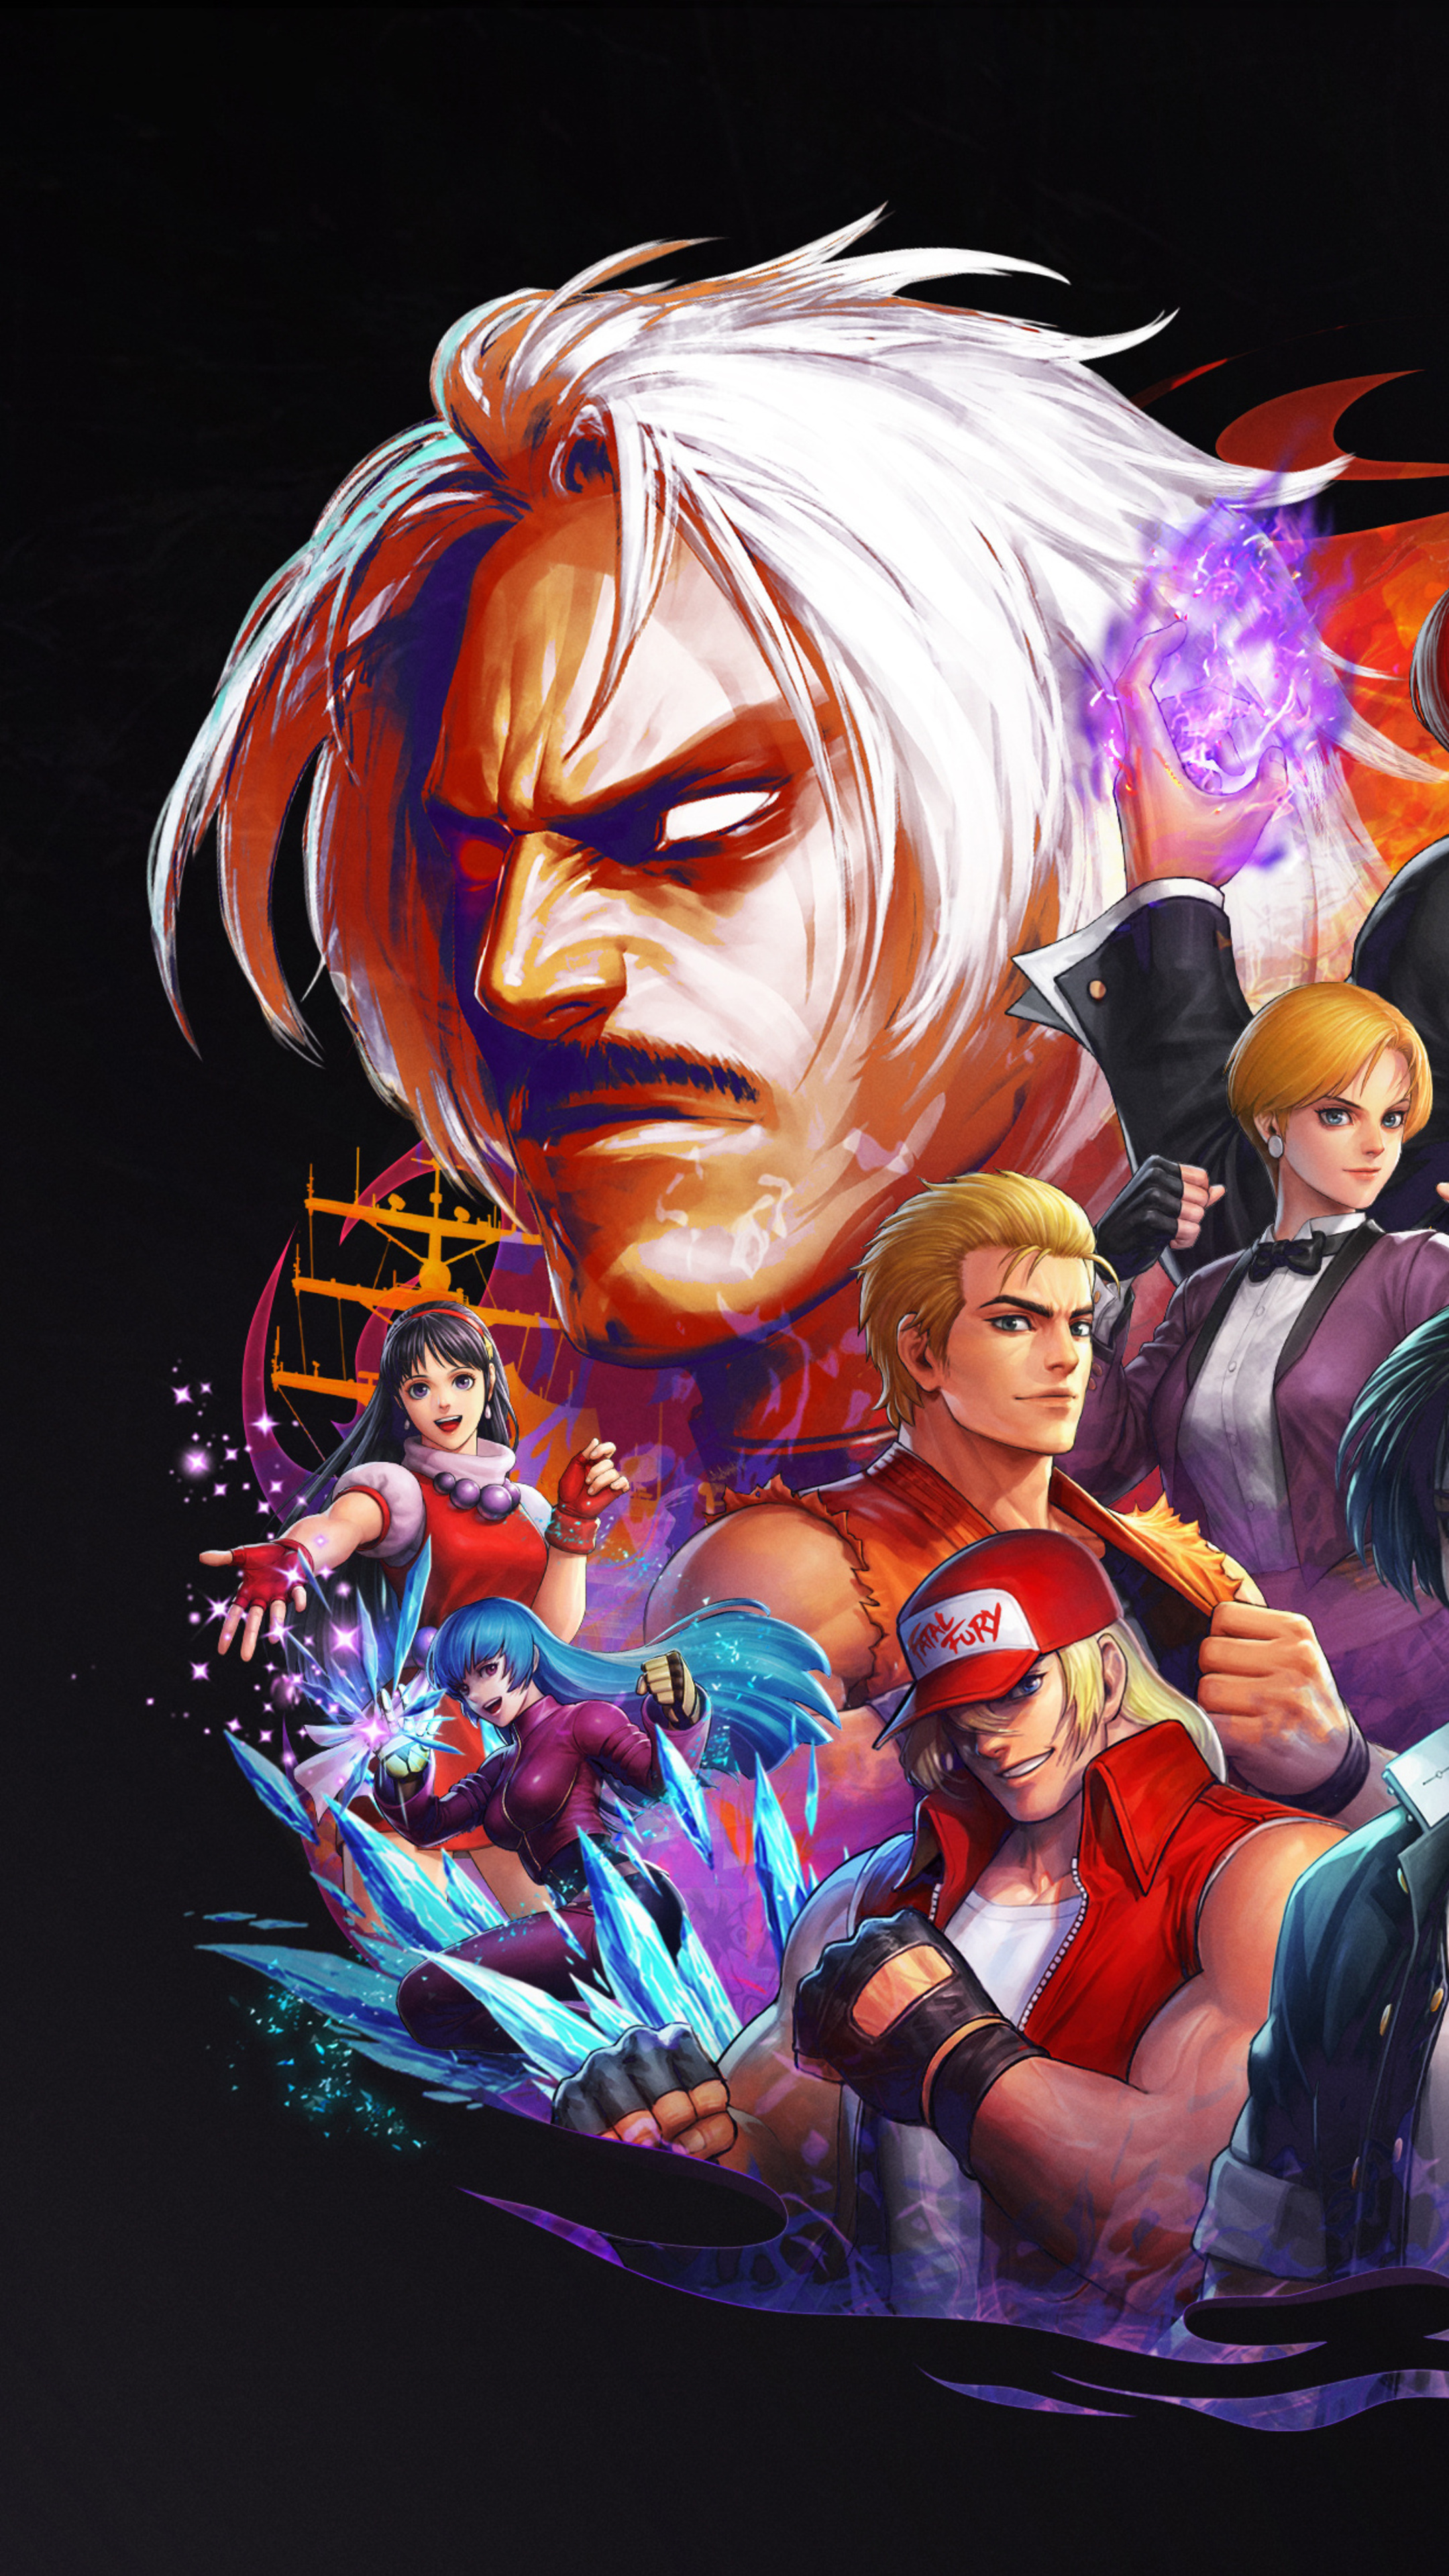 2160x3840 The King Of Fighters All Star Sony Xperia X Xz Z5